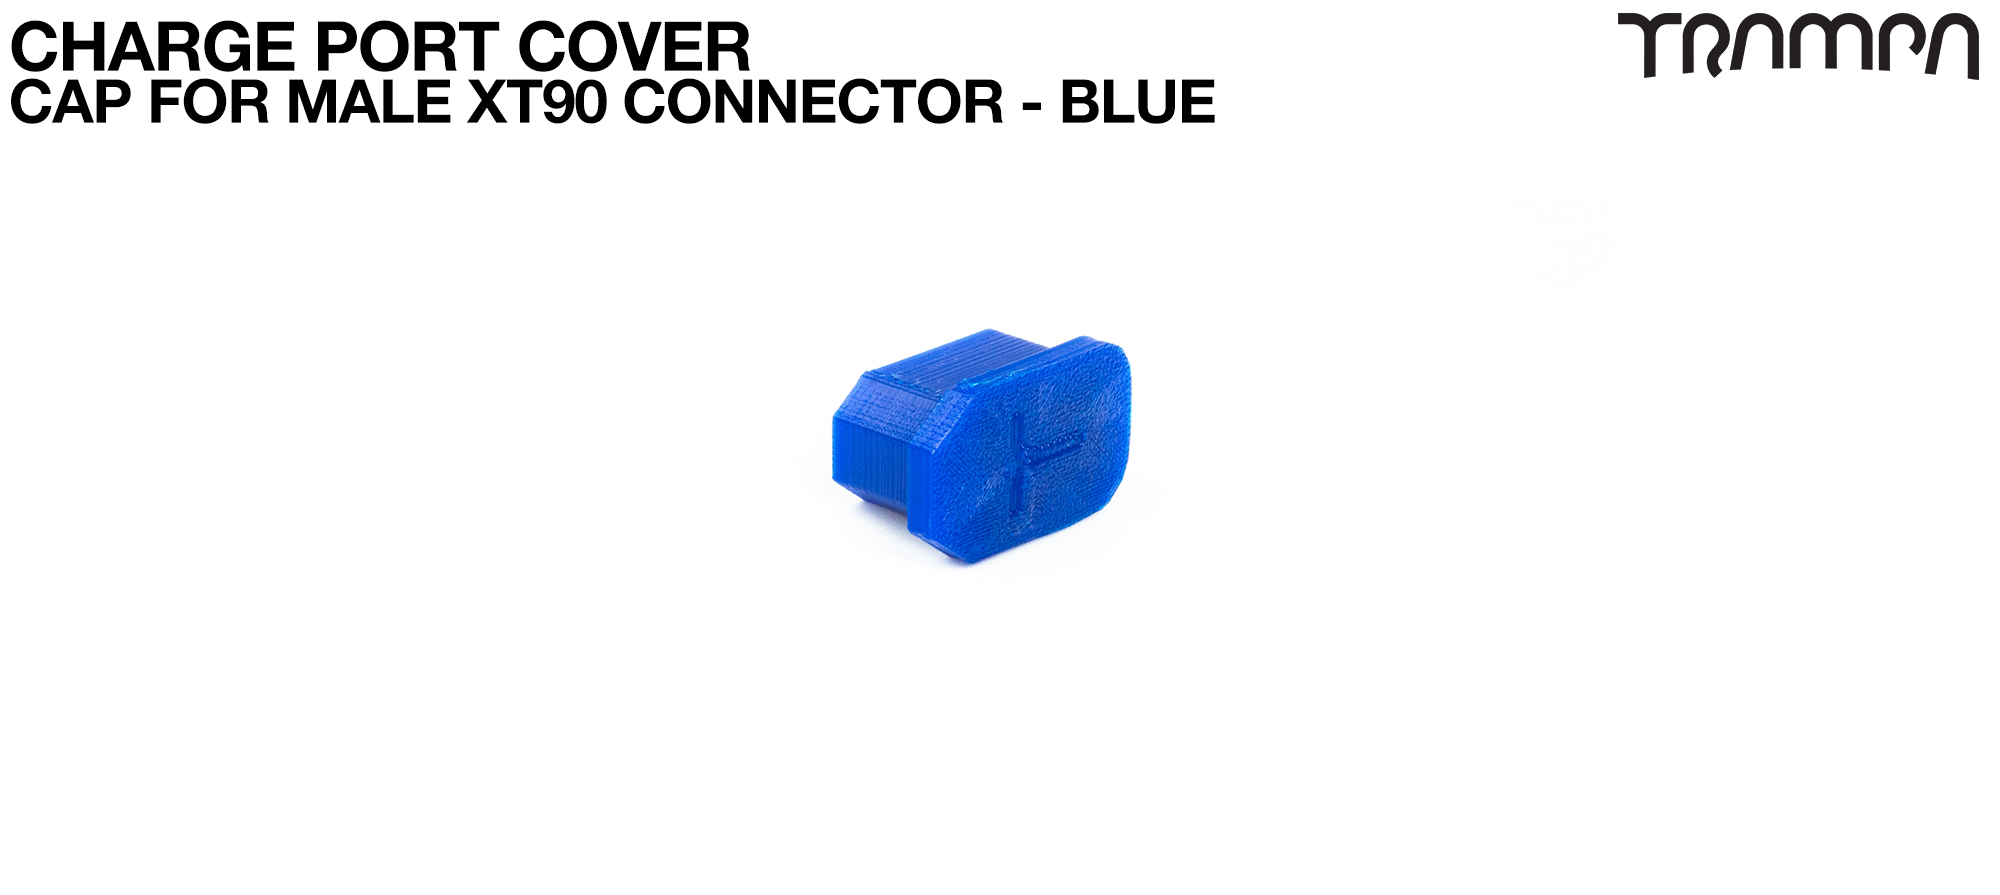 I'd like a BLUE XT90 Charge Port Cover